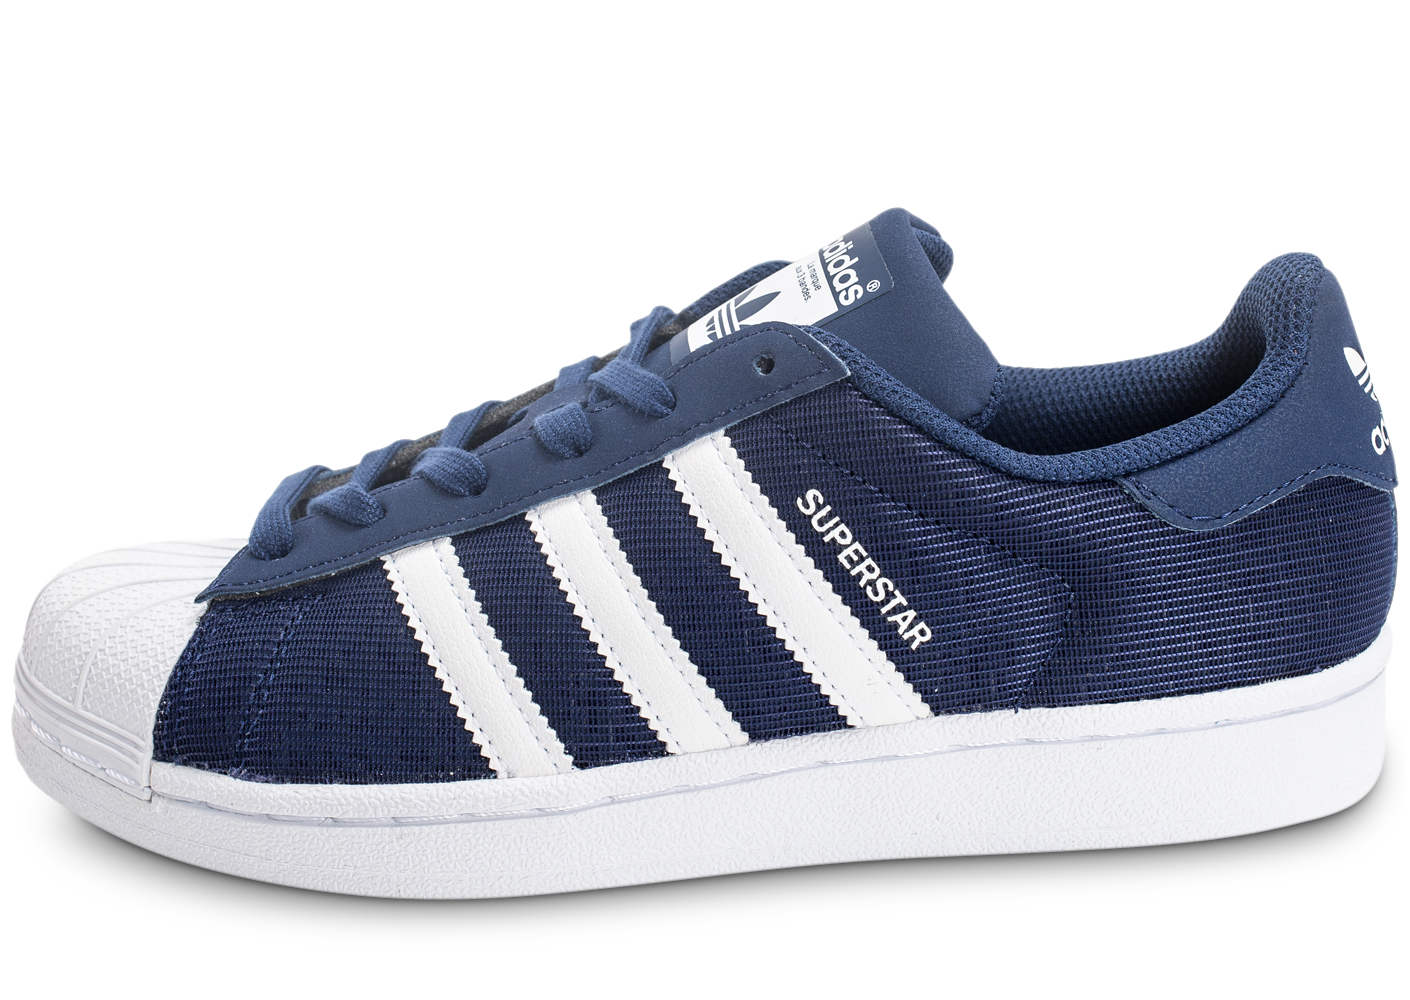 adidas Baskets/Tennis Superstar Nylon Junior Bleu Marine Enfant. 1